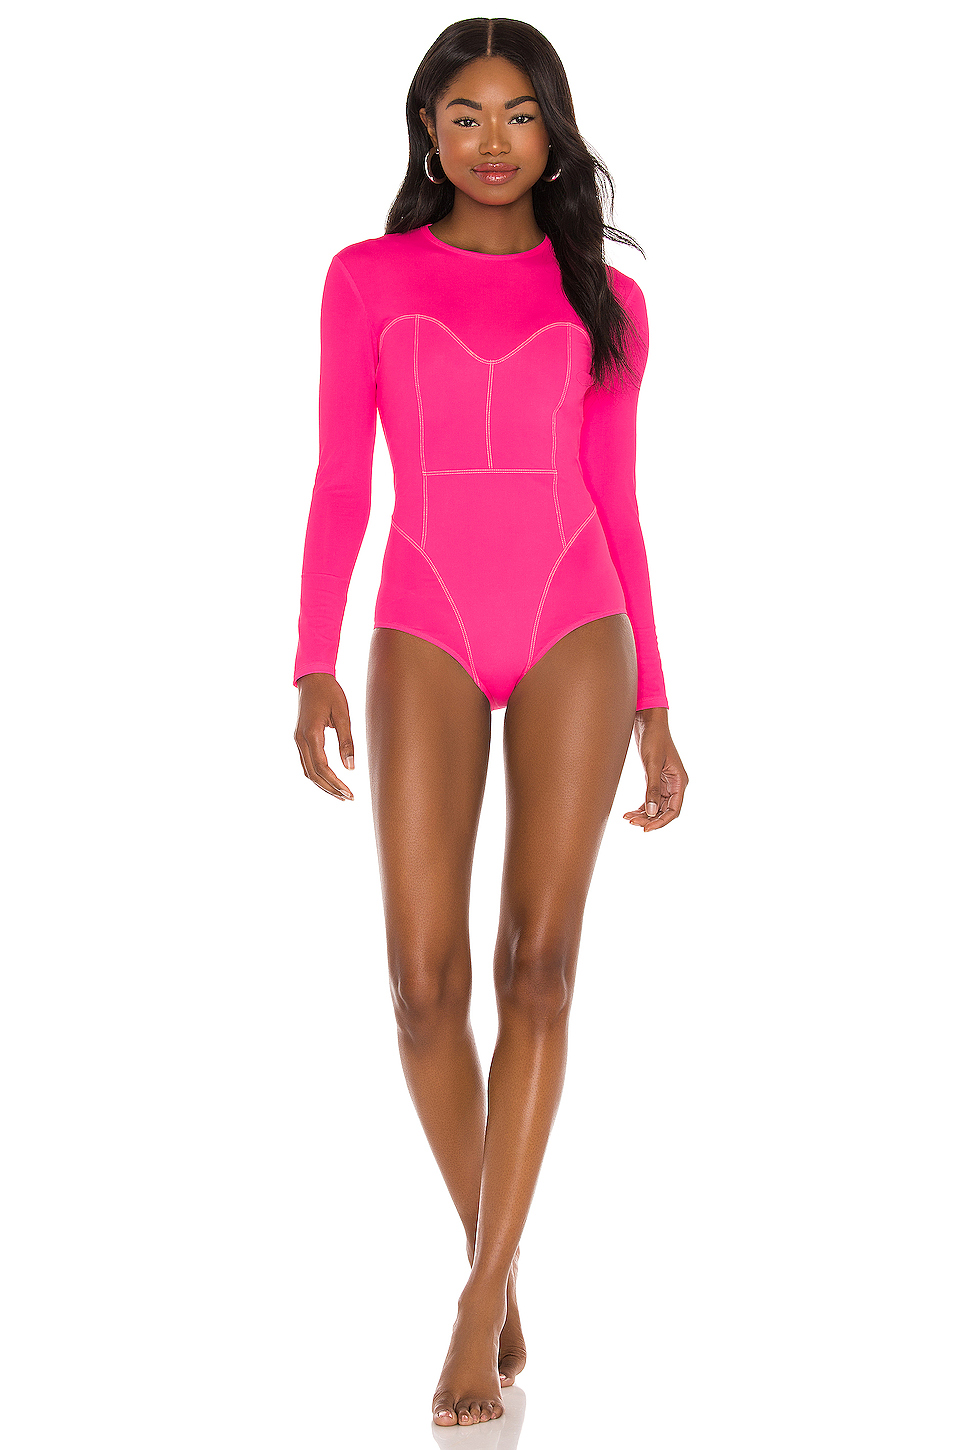 Hot pink long sleeve one piece swimsuit that covers back acne and shoulders